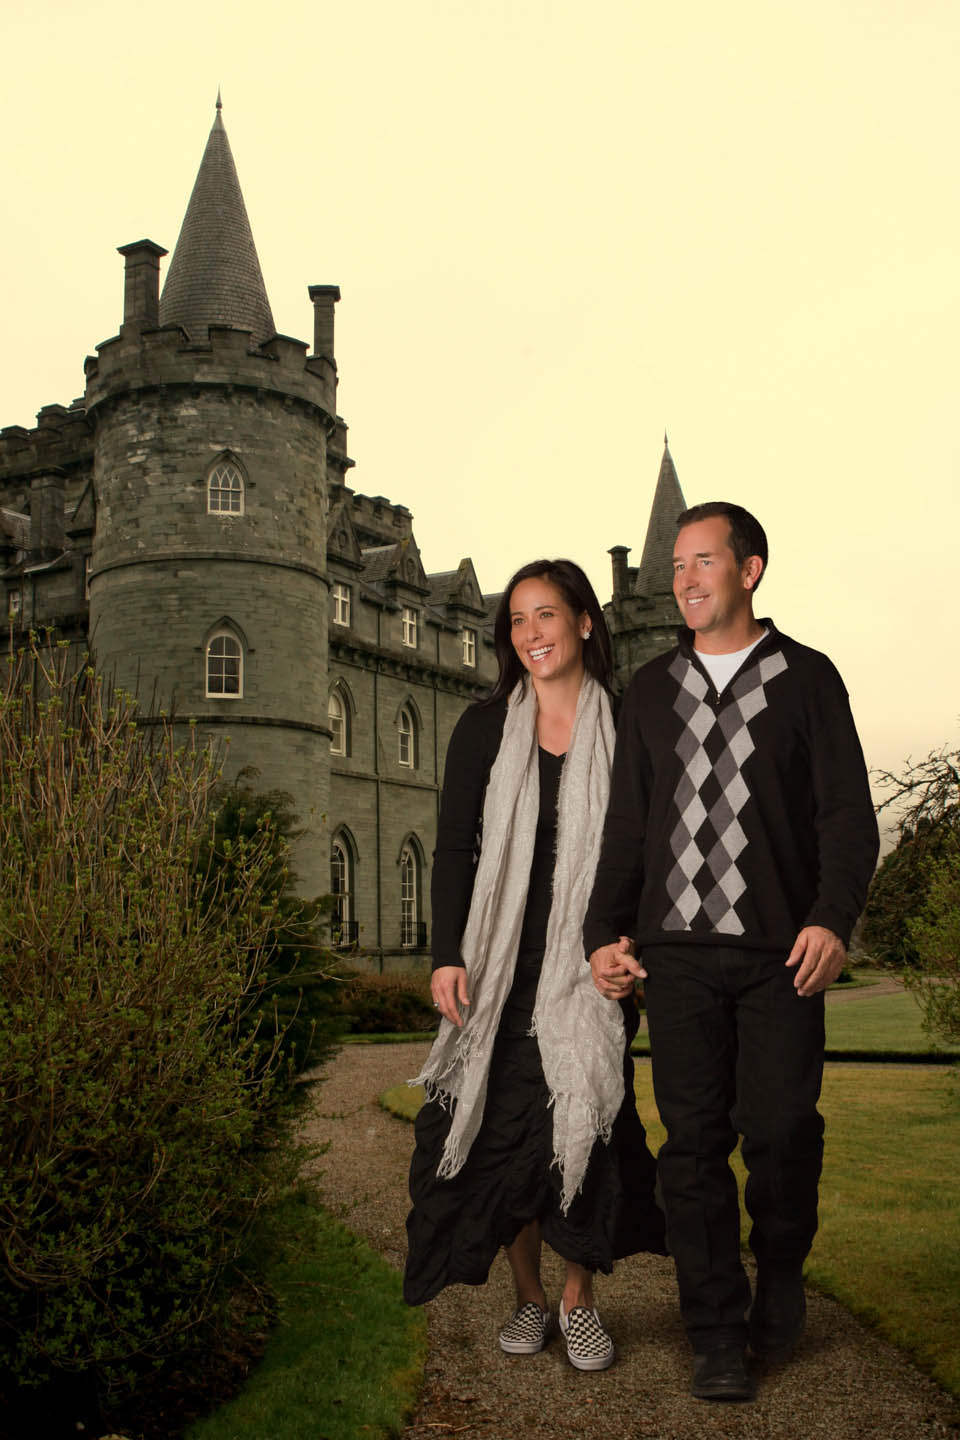 Using photoshop to add a couple to an Ireland Castle